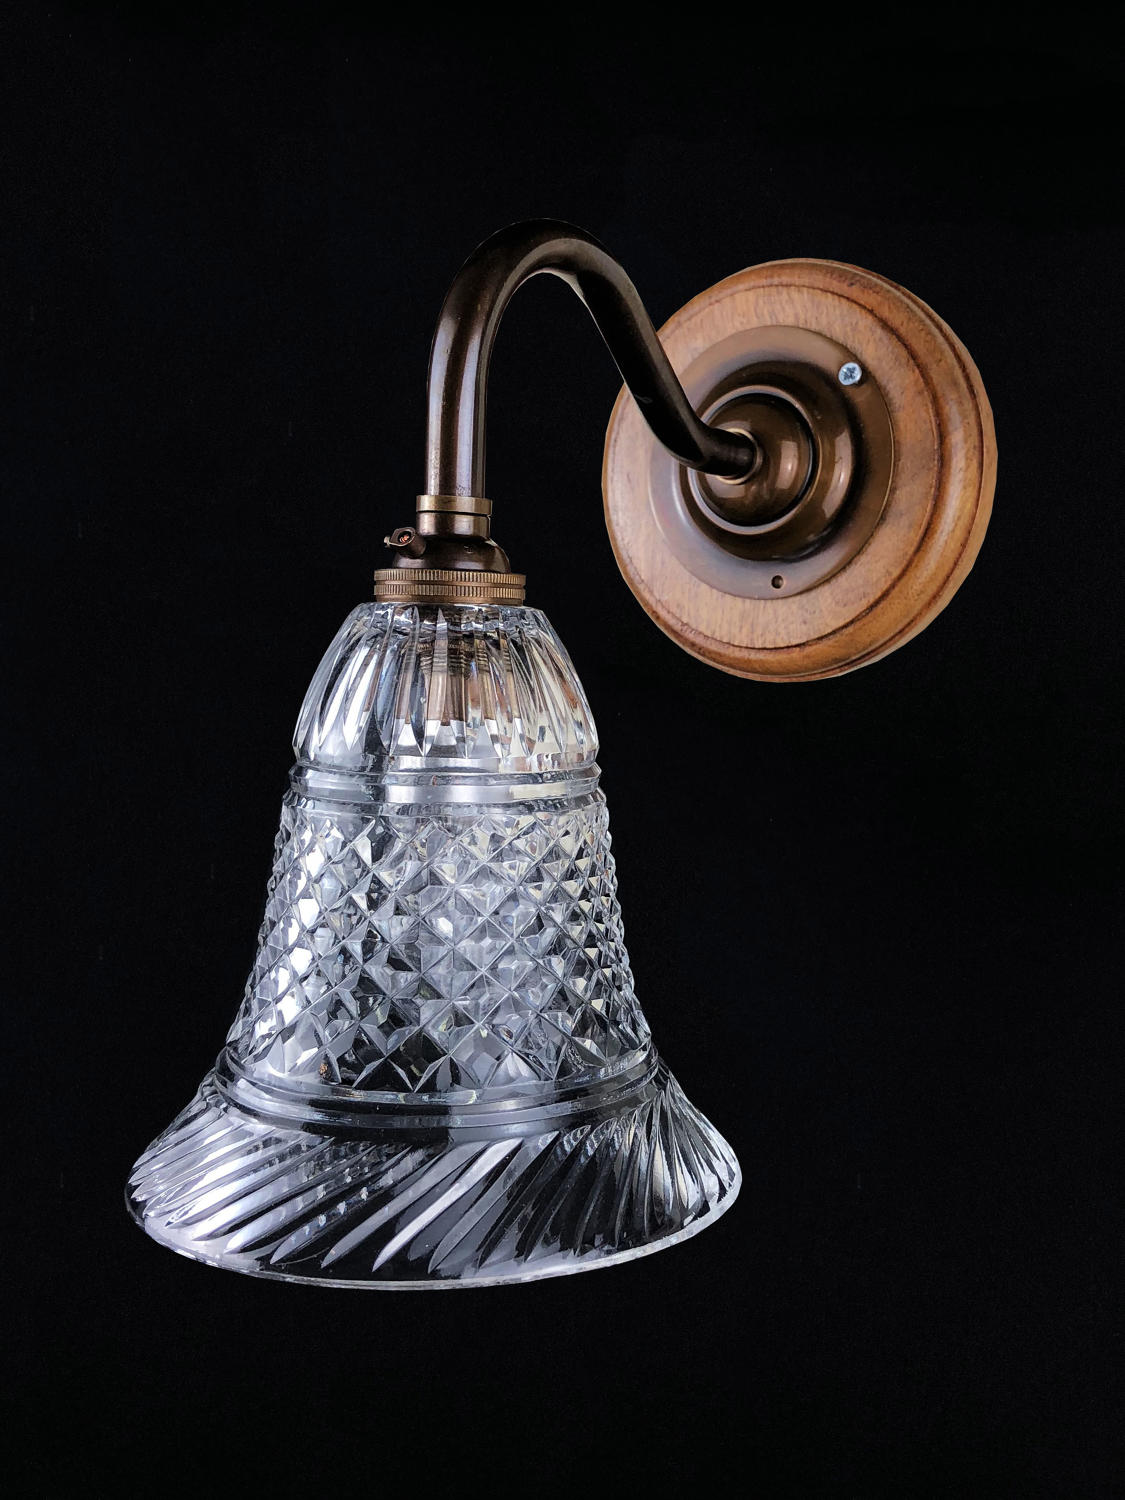 An Edwardian style wall light